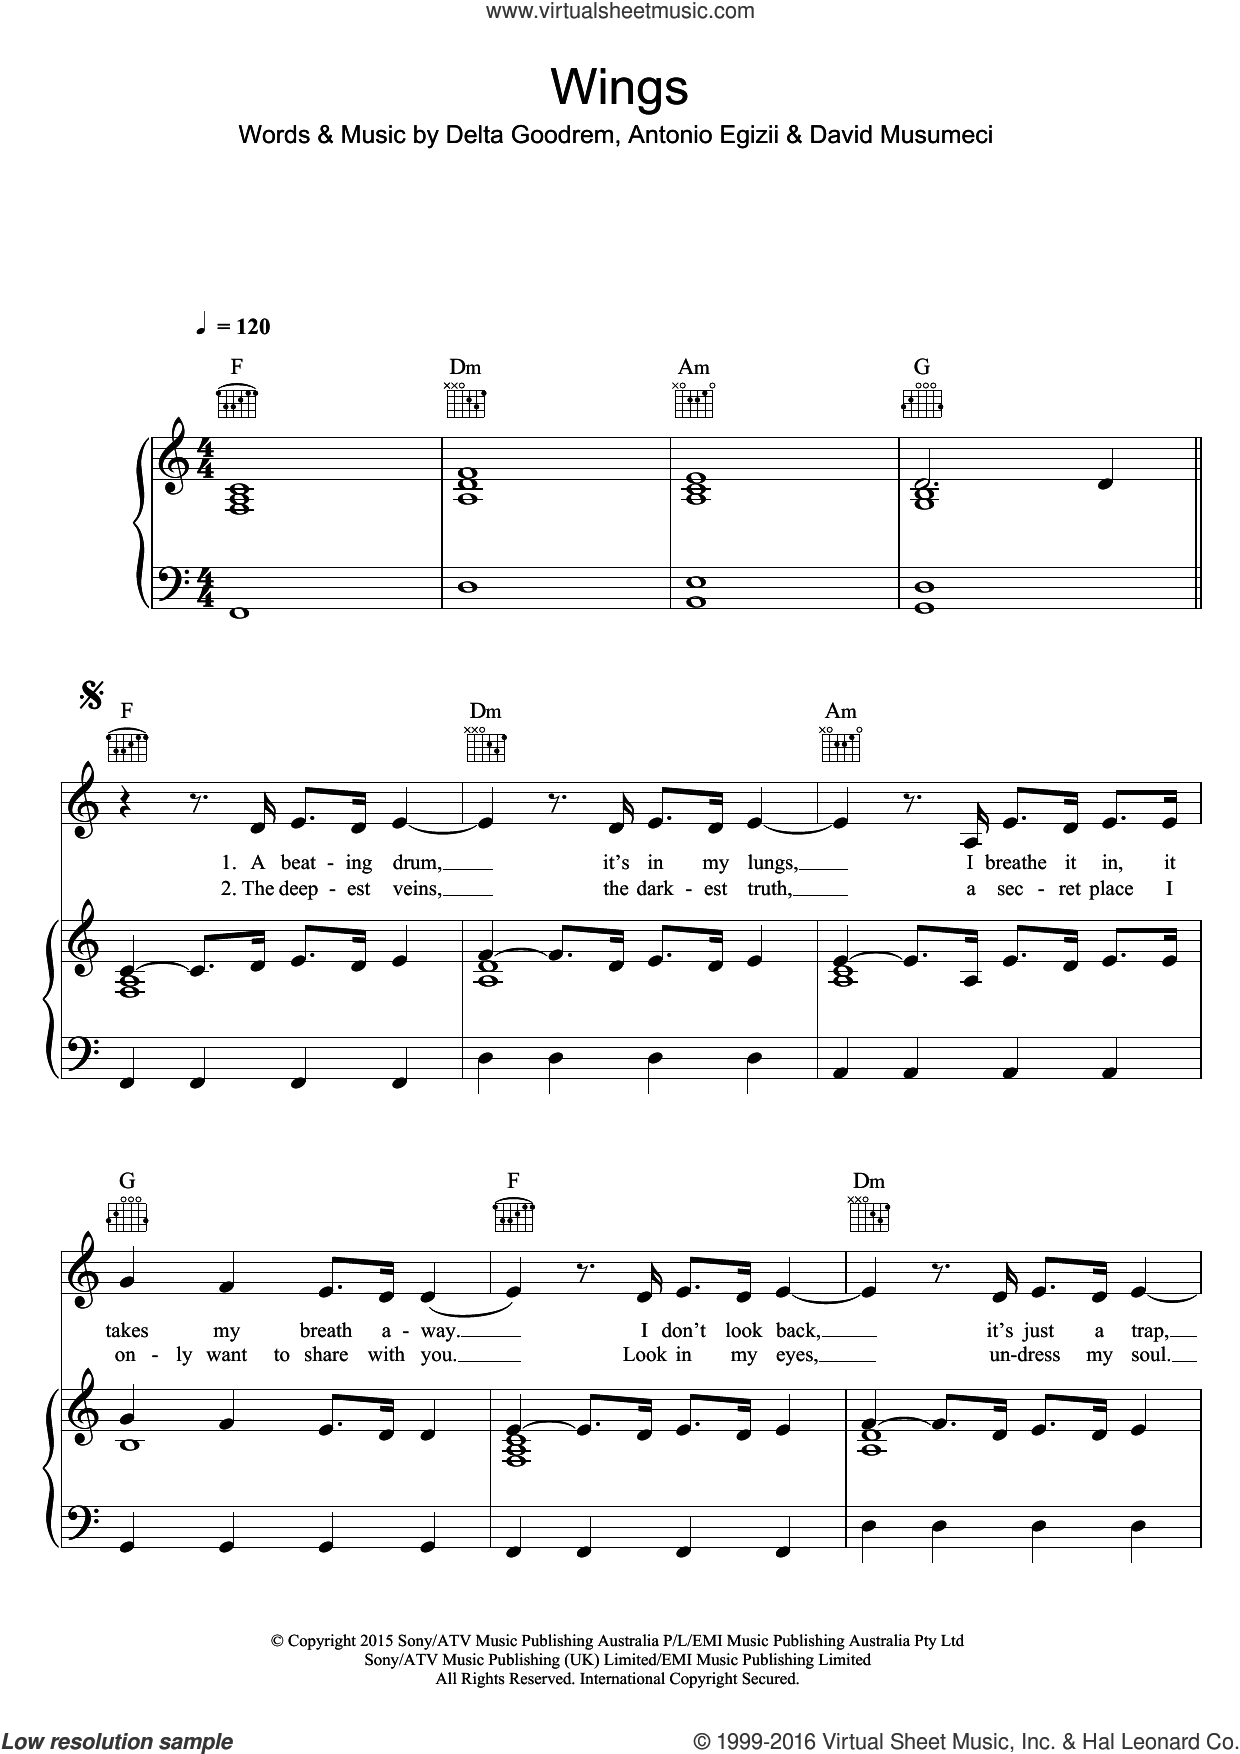 Wings sheet music for voice, piano or guitar by David Musumeci, Antonio Egizii and Delta Goodrem. Score Image Preview.